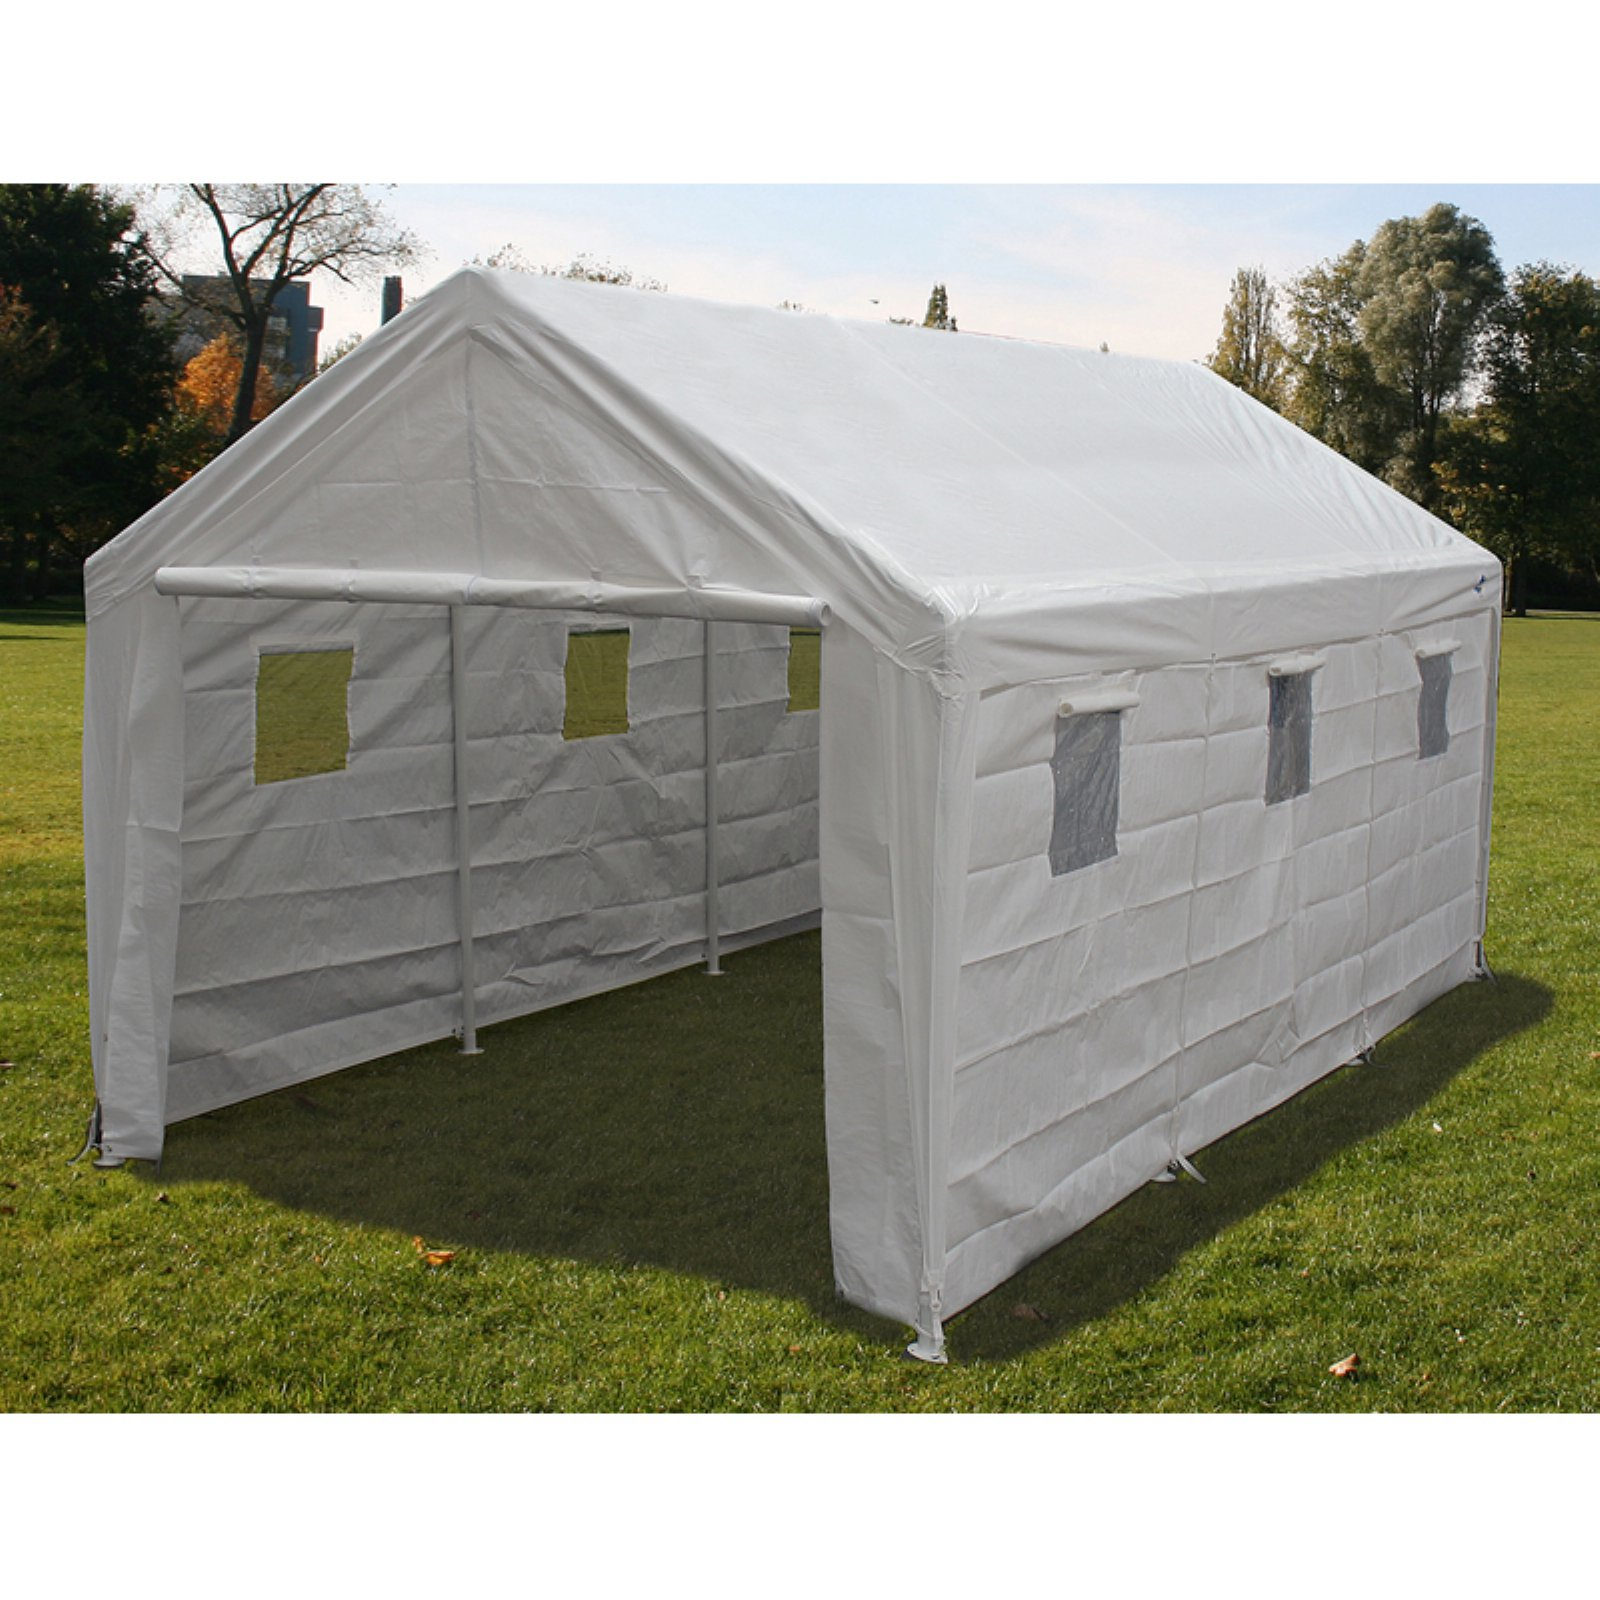 King Canopy 10 x 20 ft. Hercules Snow Load Canopy - White  sc 1 st  Walmart & King Canopy 10 x 20 ft. Hercules Snow Load Canopy - White ...